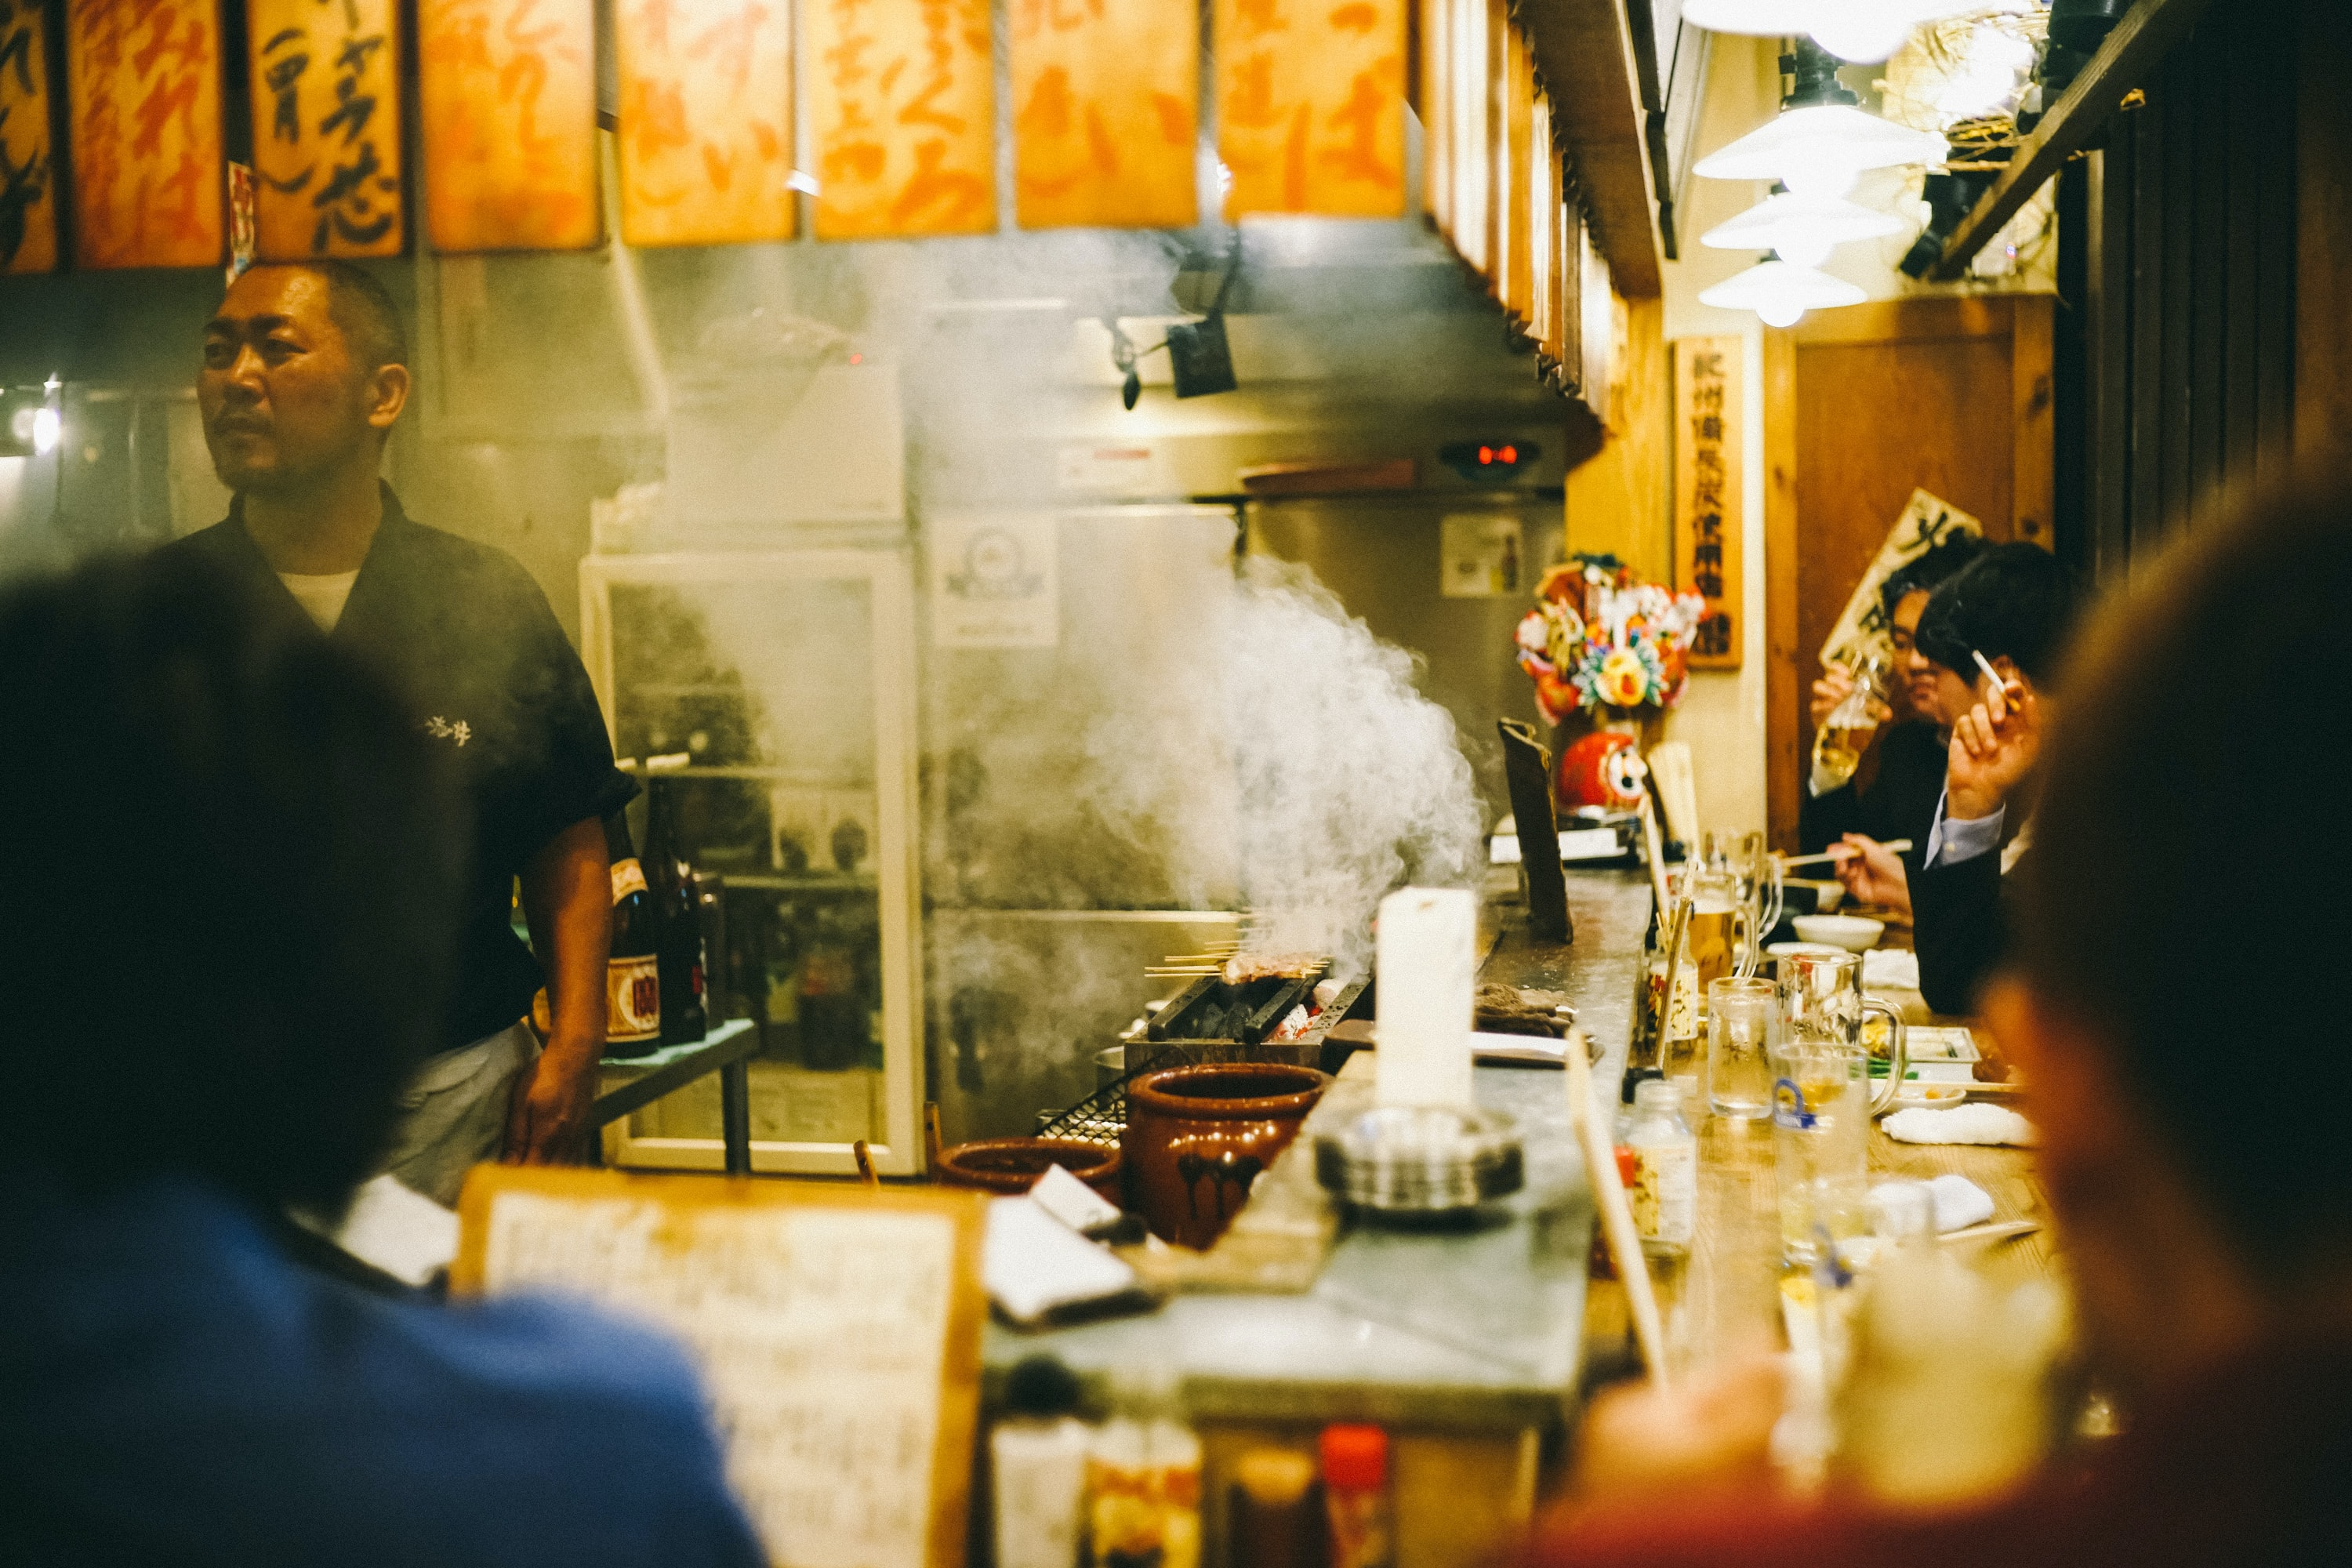 A chef cooking food for people eating at a smokey restaurant in Shinjuku